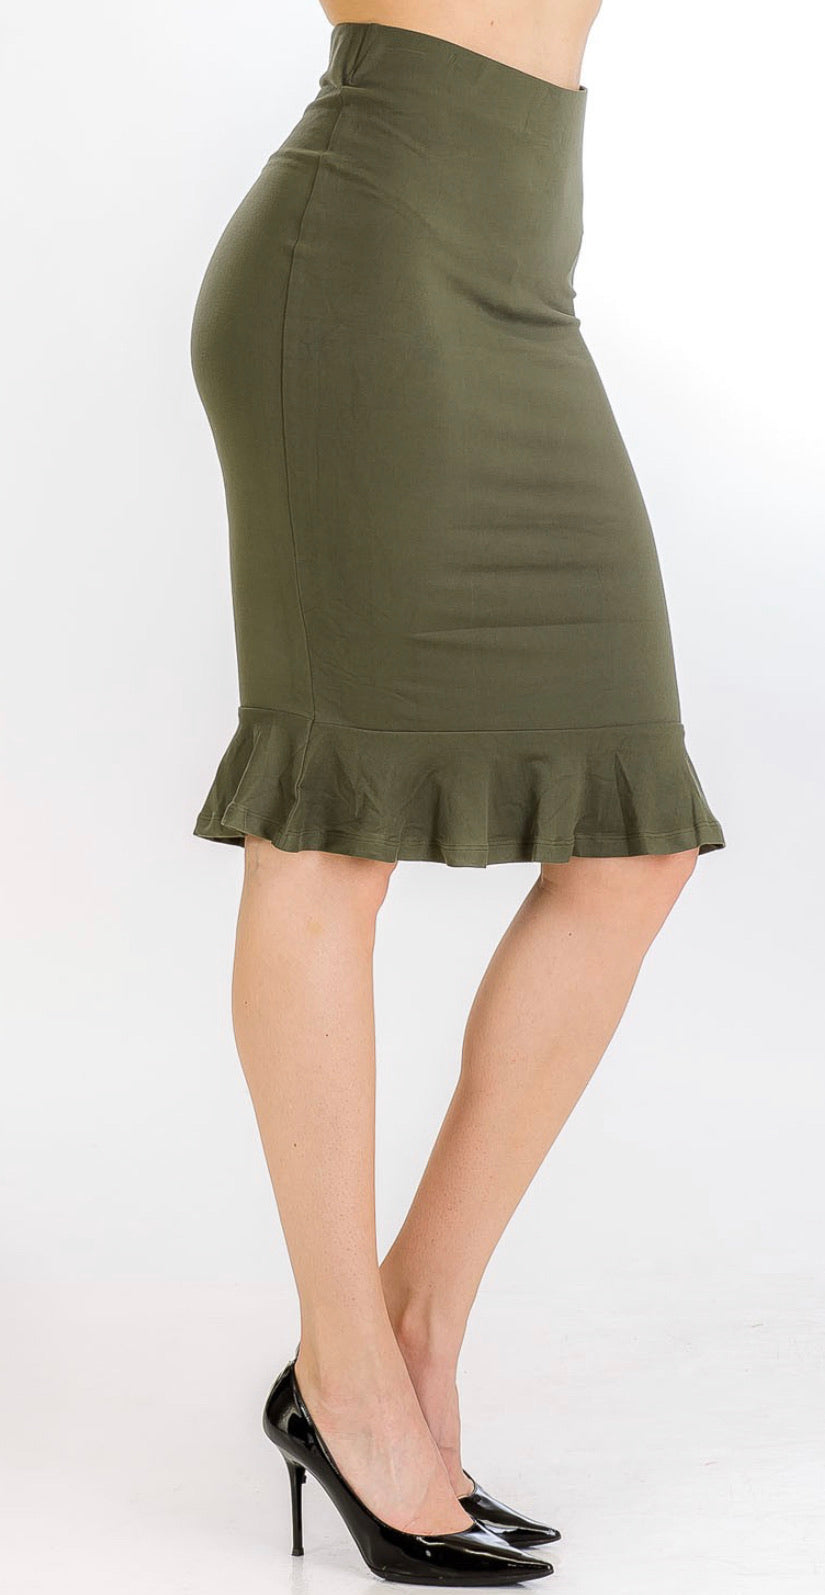 Olive Ruffle Pencil Skirt